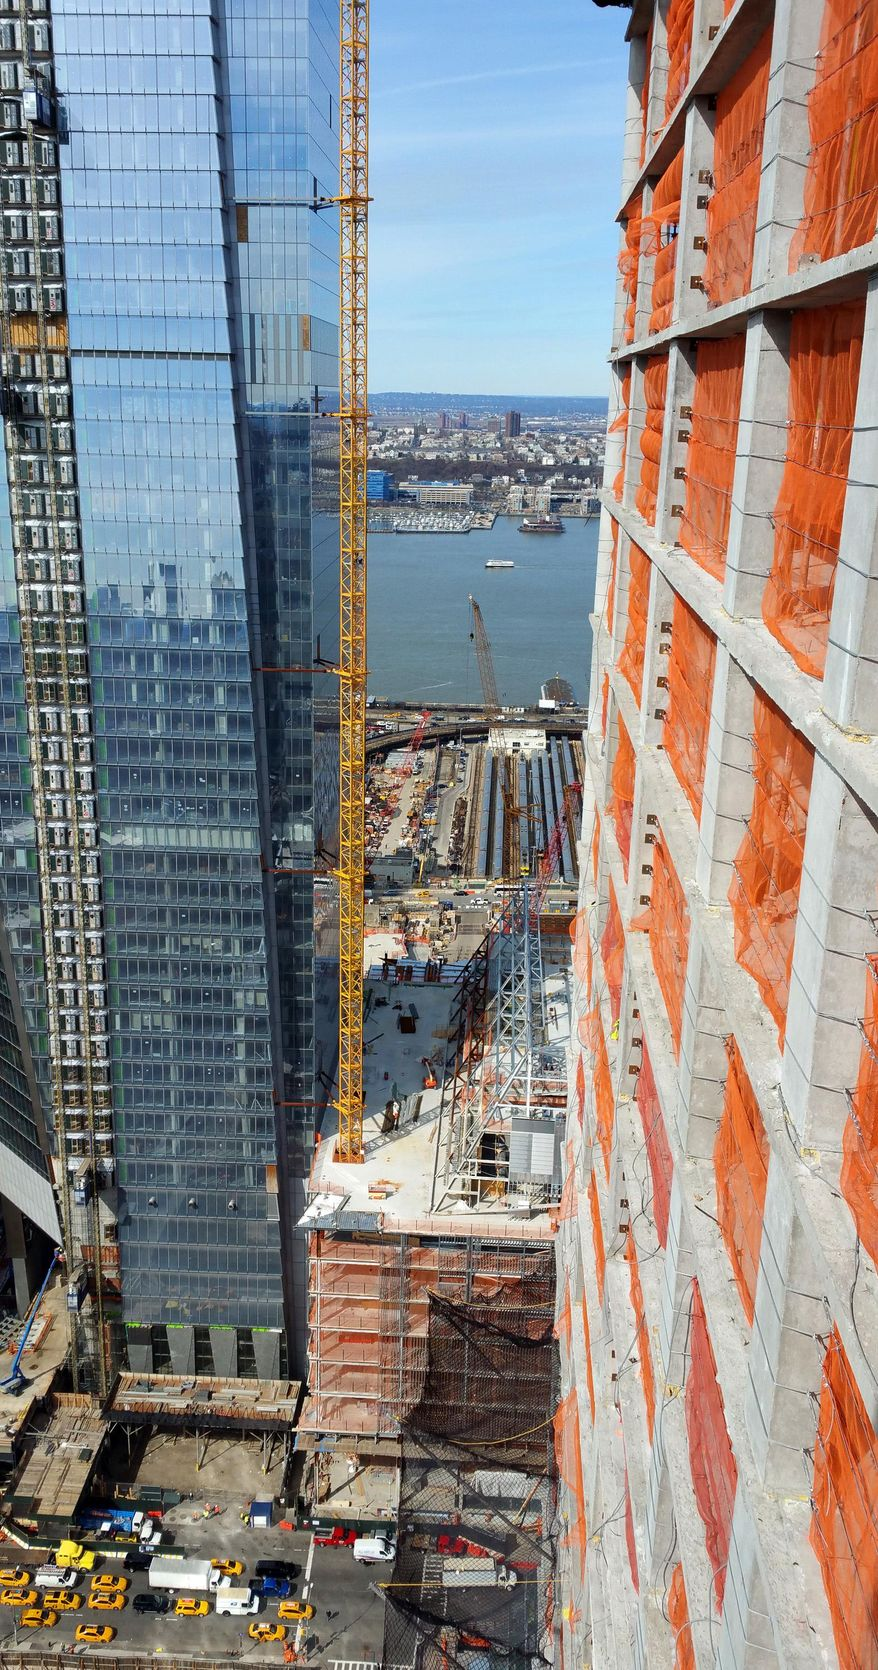 This March 3, 2016, photo, from a high-rise under construction shows the view from the narrow walkway crane operators use to reach their glass control cab, on New York's west side. All around New York City, mammoth cranes fill the city skyline, erecting dozens of skyscrapers that are part of the city's current building boom. At right is Brookfield Property Group's Manhattan West project where orange netting is all that separates workers from a 50 floor drop. (AP Photo/Verena Dobnik)